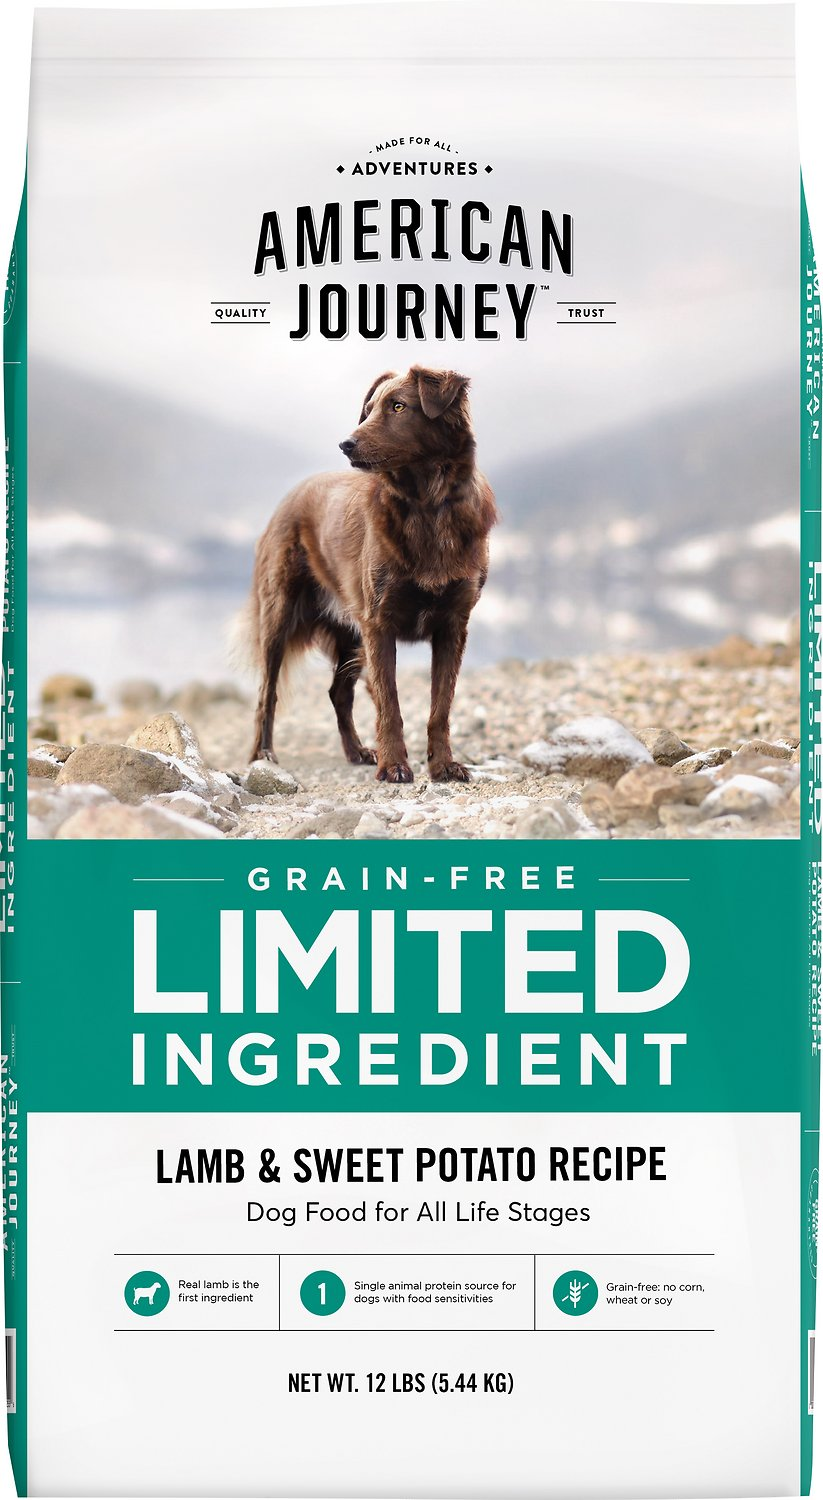 What Are The Reviews For American Journey Dog Food